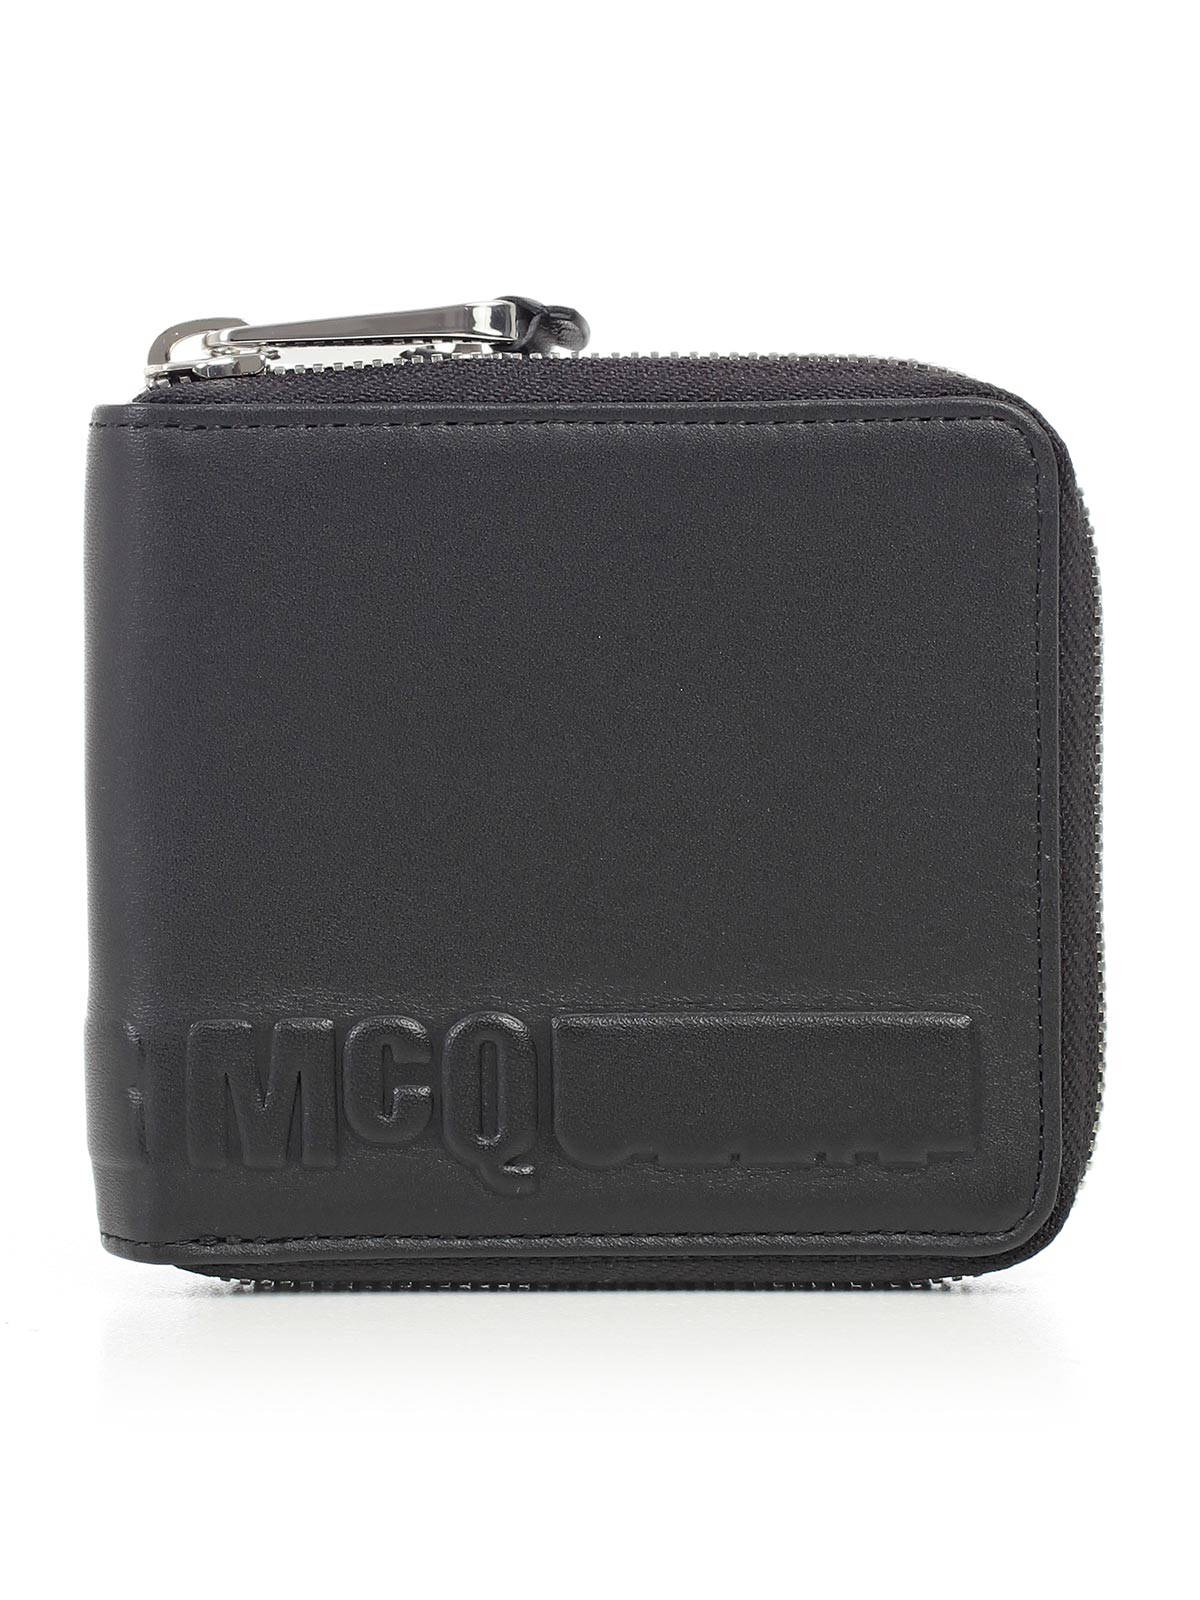 Picture of Mcq Alexander Mcqueen Wallets & Cardholders